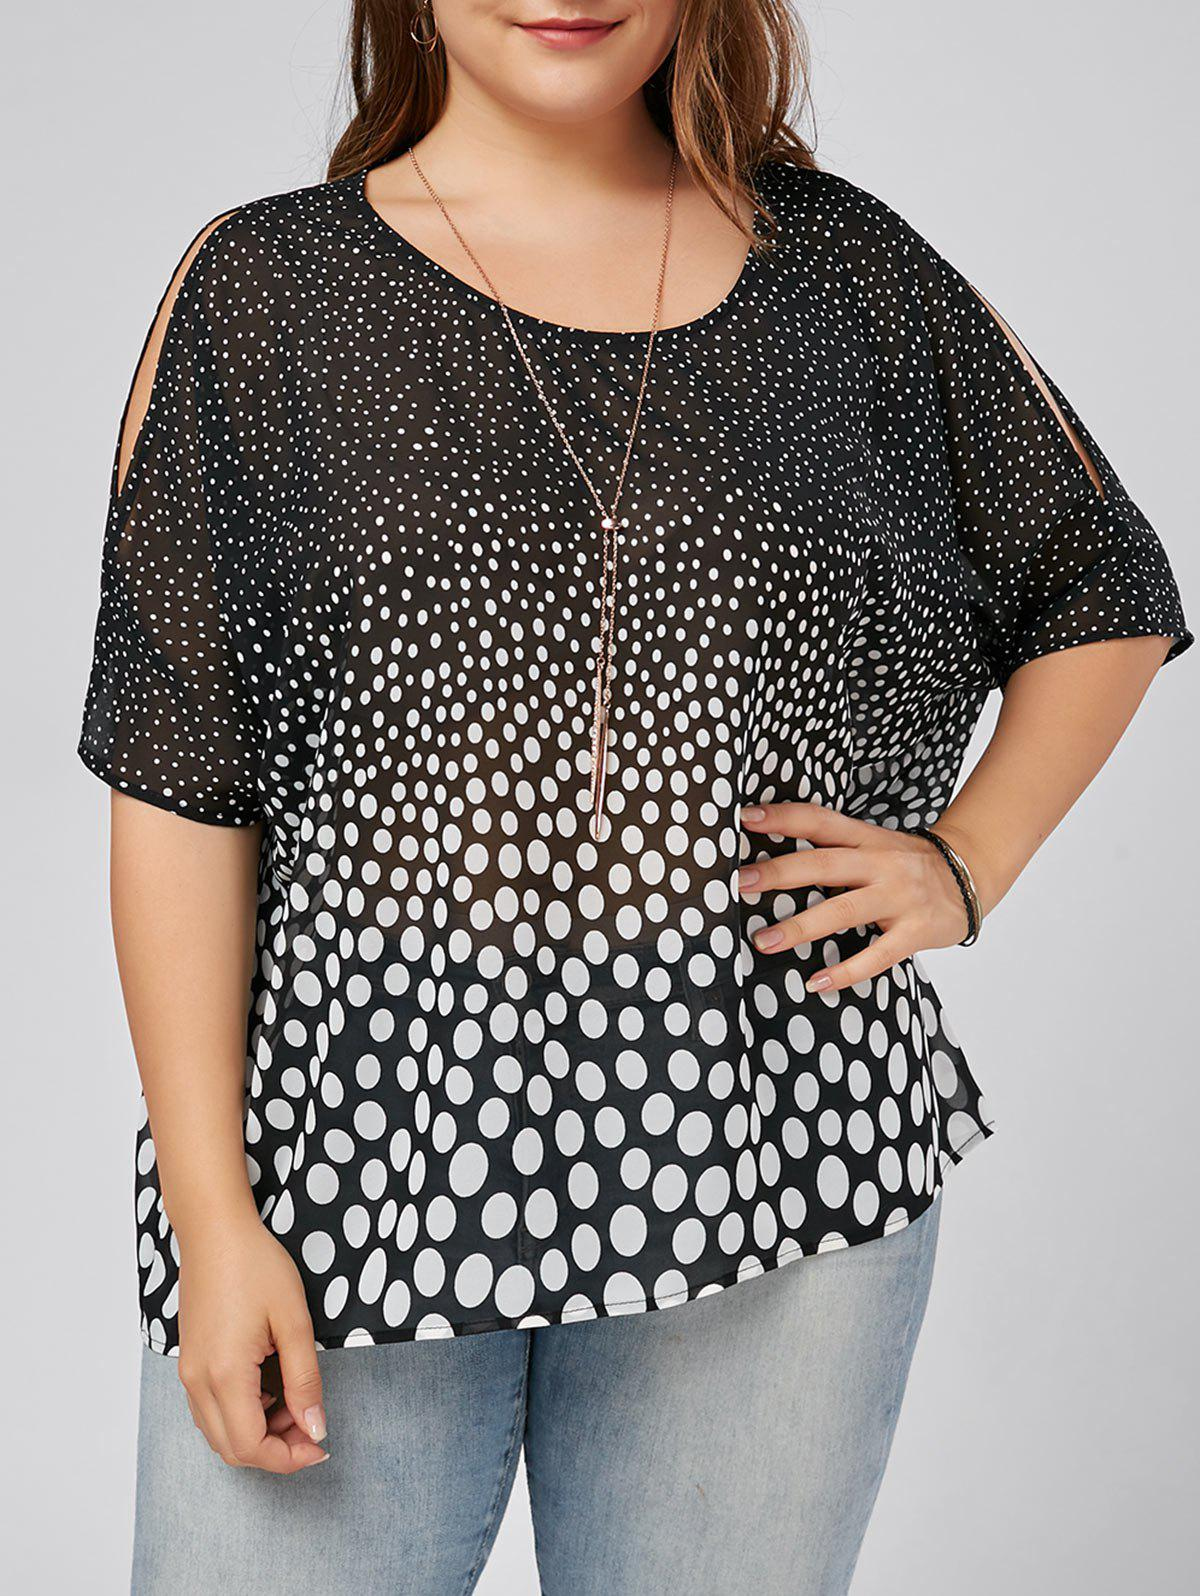 Plus Size Slit Sleeve Polka Dot Blouse - BLACK 5XL